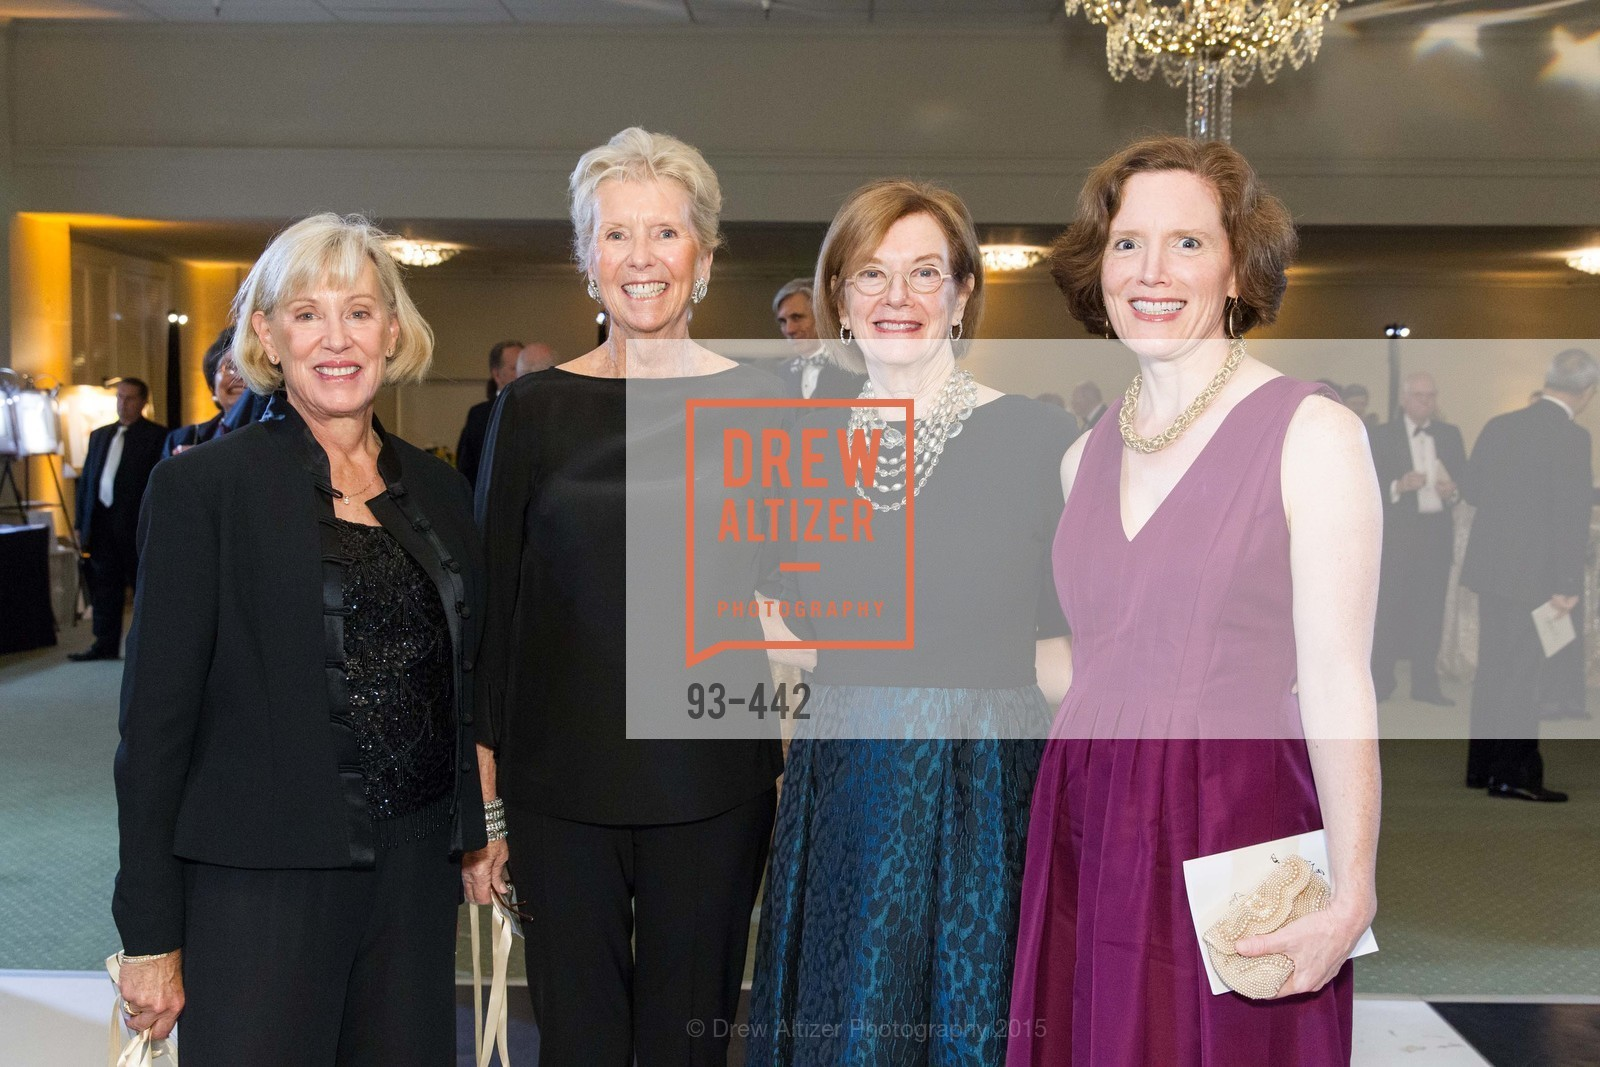 Barbara Backer, Susie Gilmartin, Lynn Thompson, Laurel Paul, Metropolitan Club Presents THE CENTENNIAL GALA, Metropolitan Club. 640 Sutter Street, November 5th, 2015,Drew Altizer, Drew Altizer Photography, full-service agency, private events, San Francisco photographer, photographer california